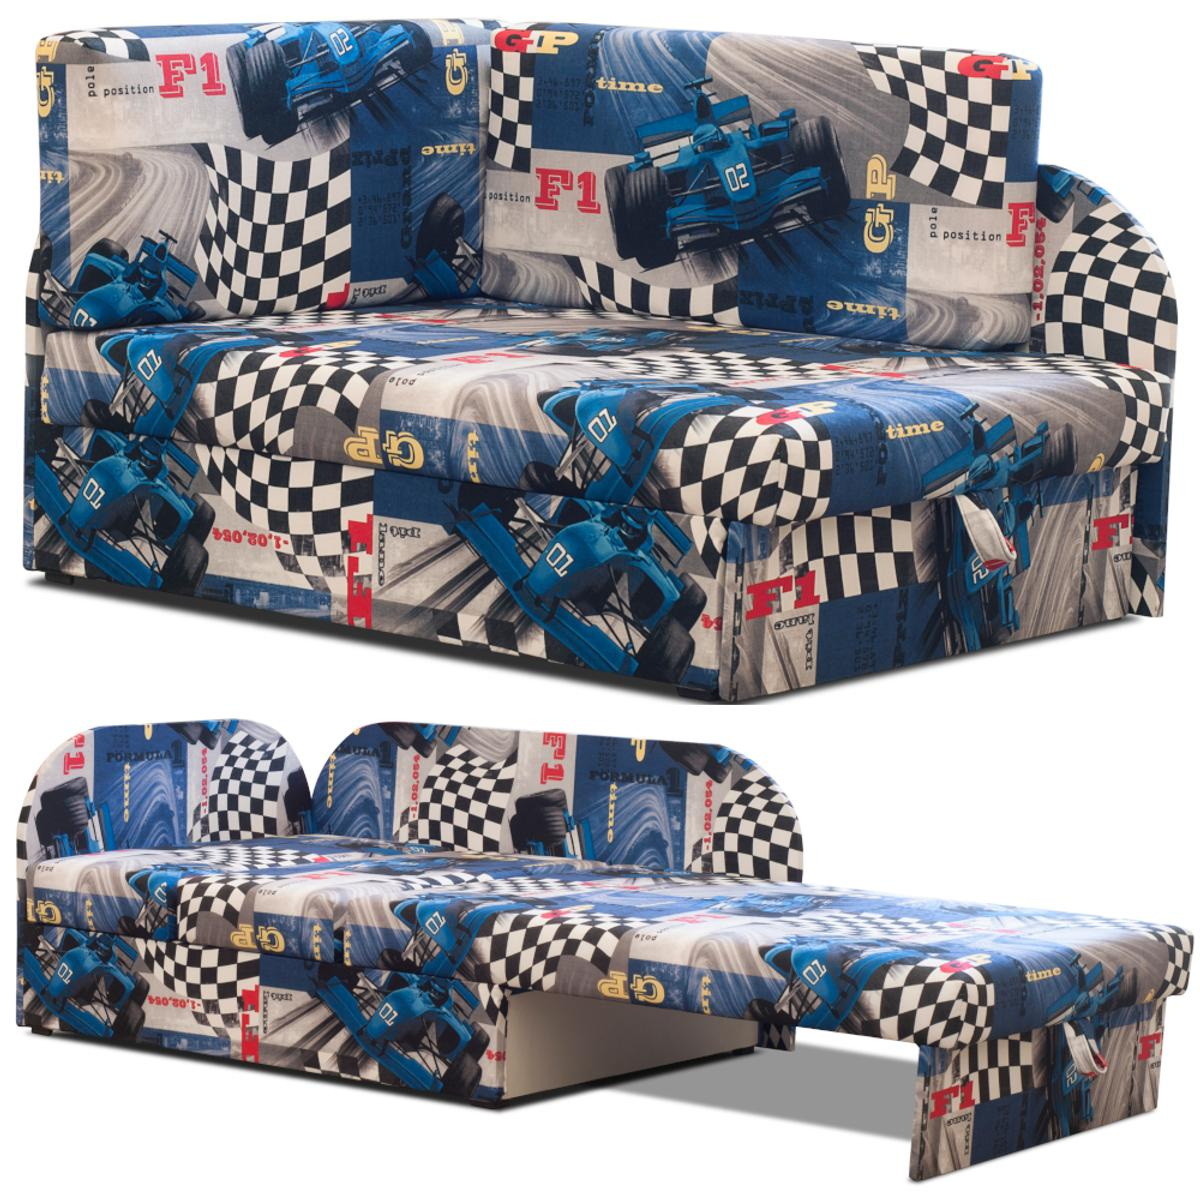 Picture of: Kids Sofa Bed Formula 1 With Storage In Bd1 Bradford For 125 00 For Sale Shpock